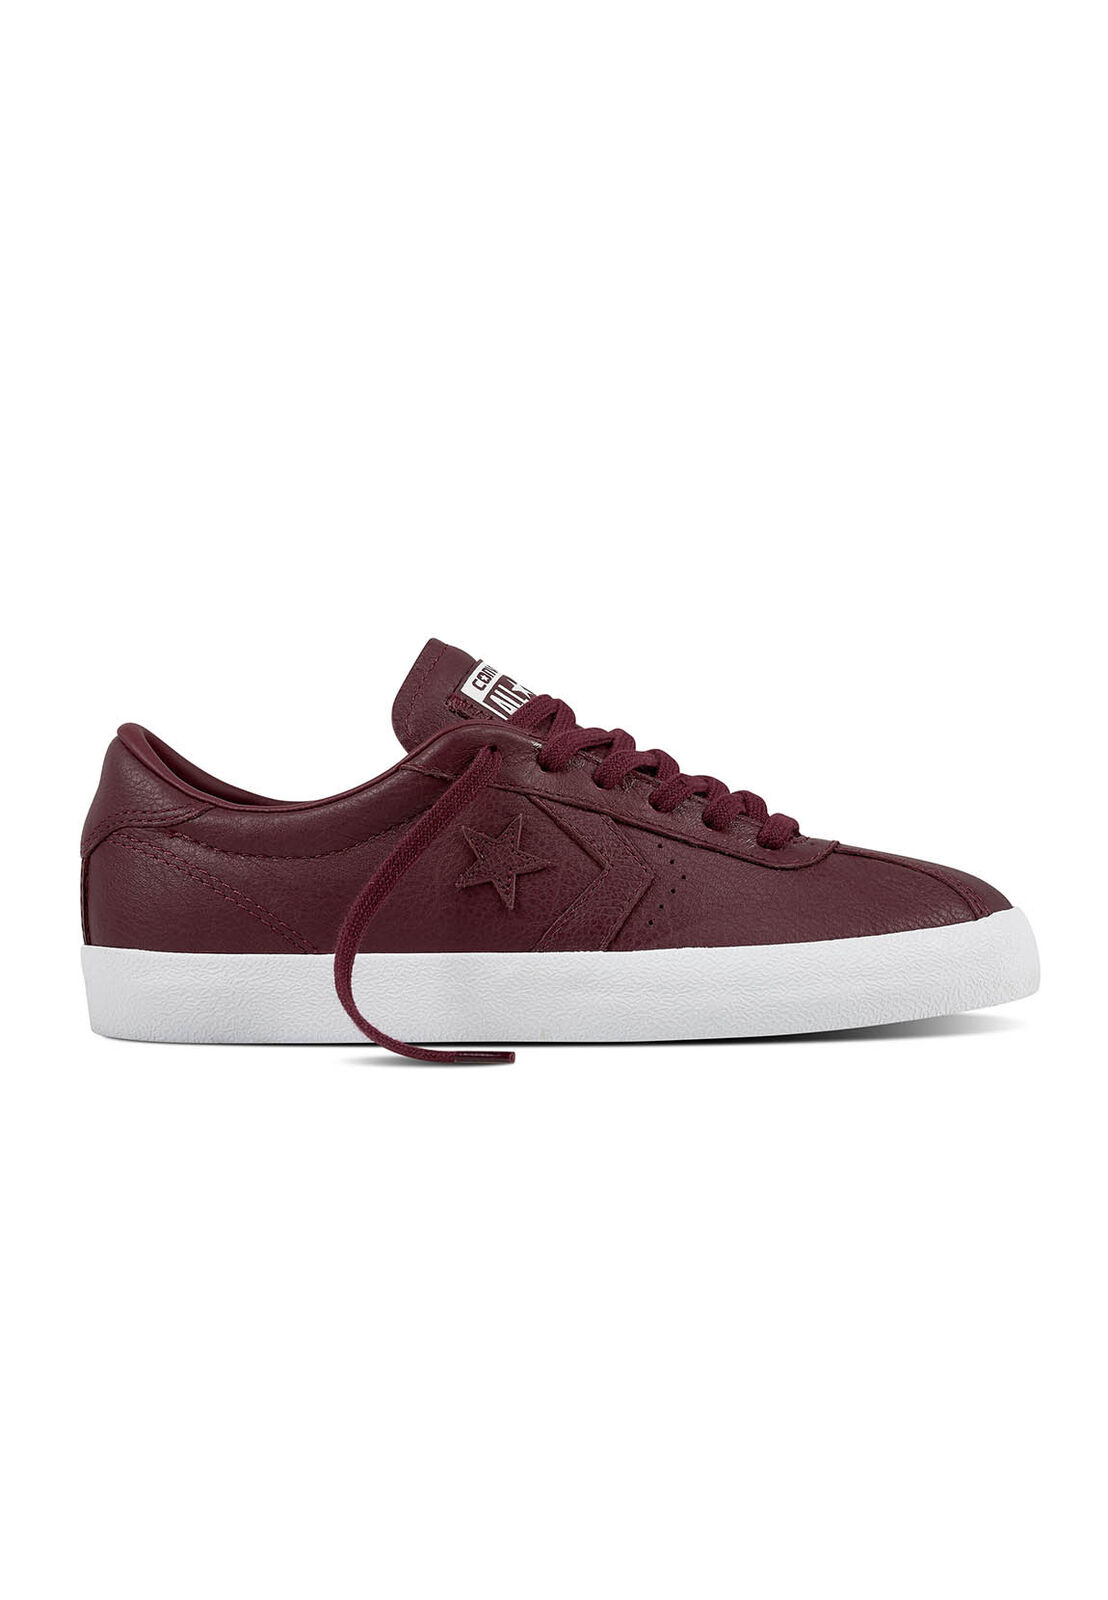 Converse Trainers Breakpoint Ox 157800c Dark Red